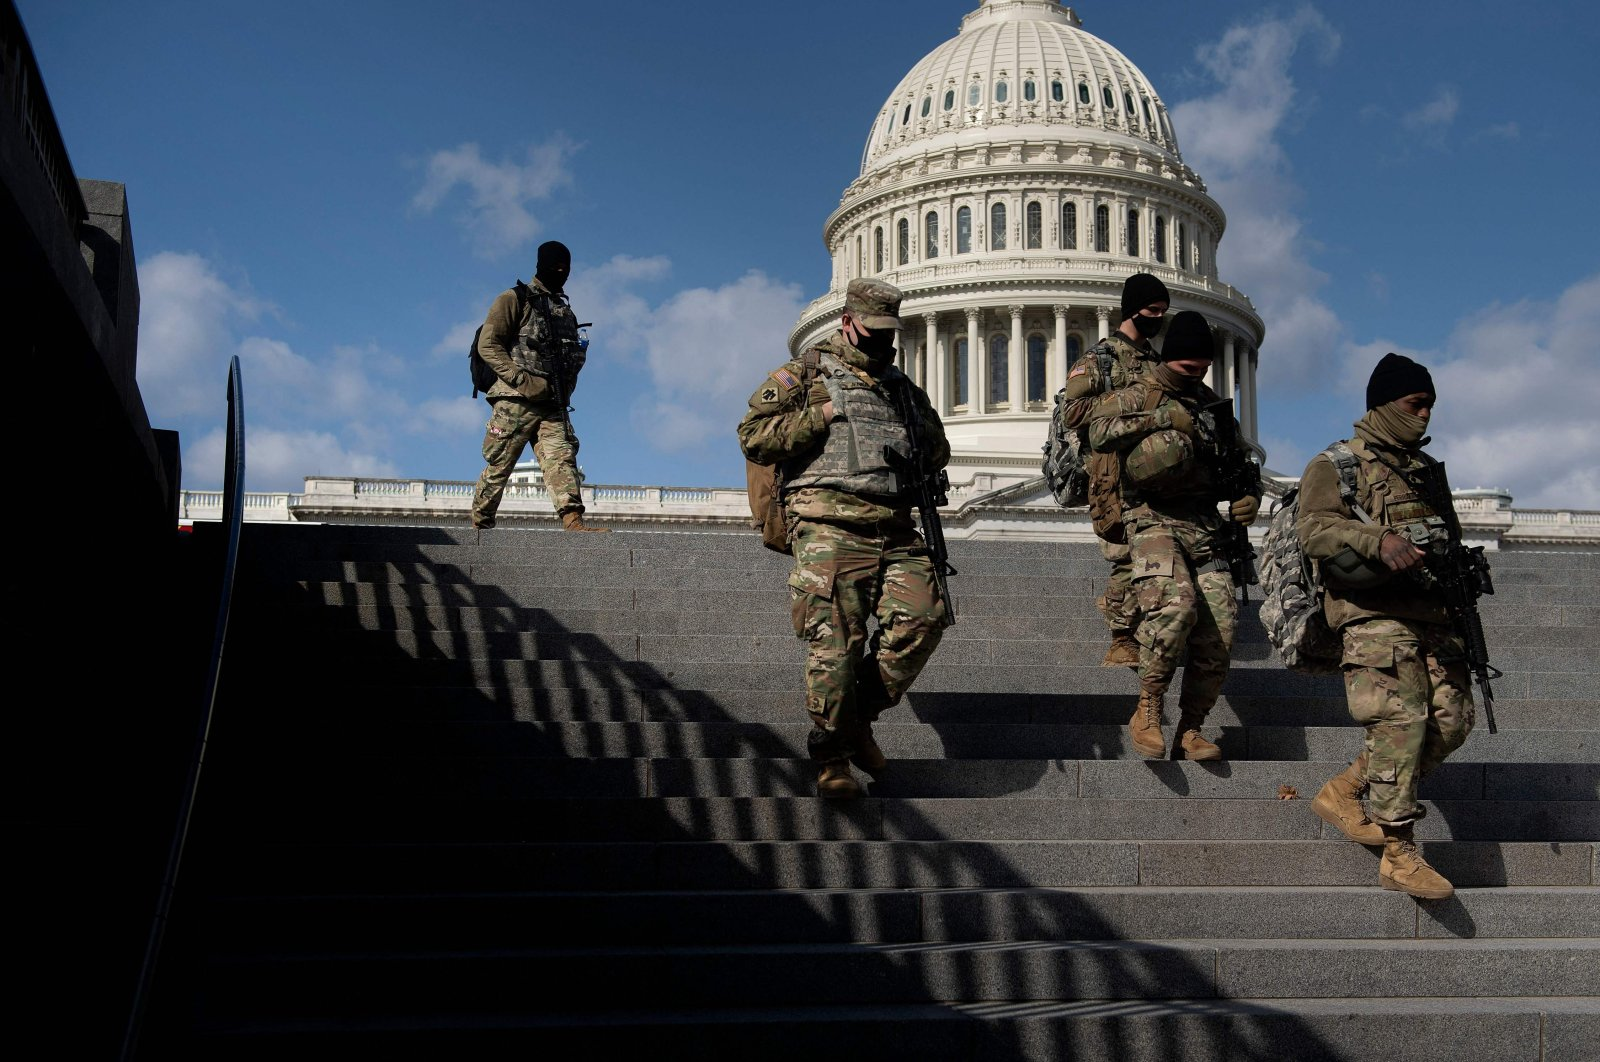 Members of the National Guard patrol the grounds of the U.S. Capitol in Washington, D.C., March 4, 2021. (AFP Photo)